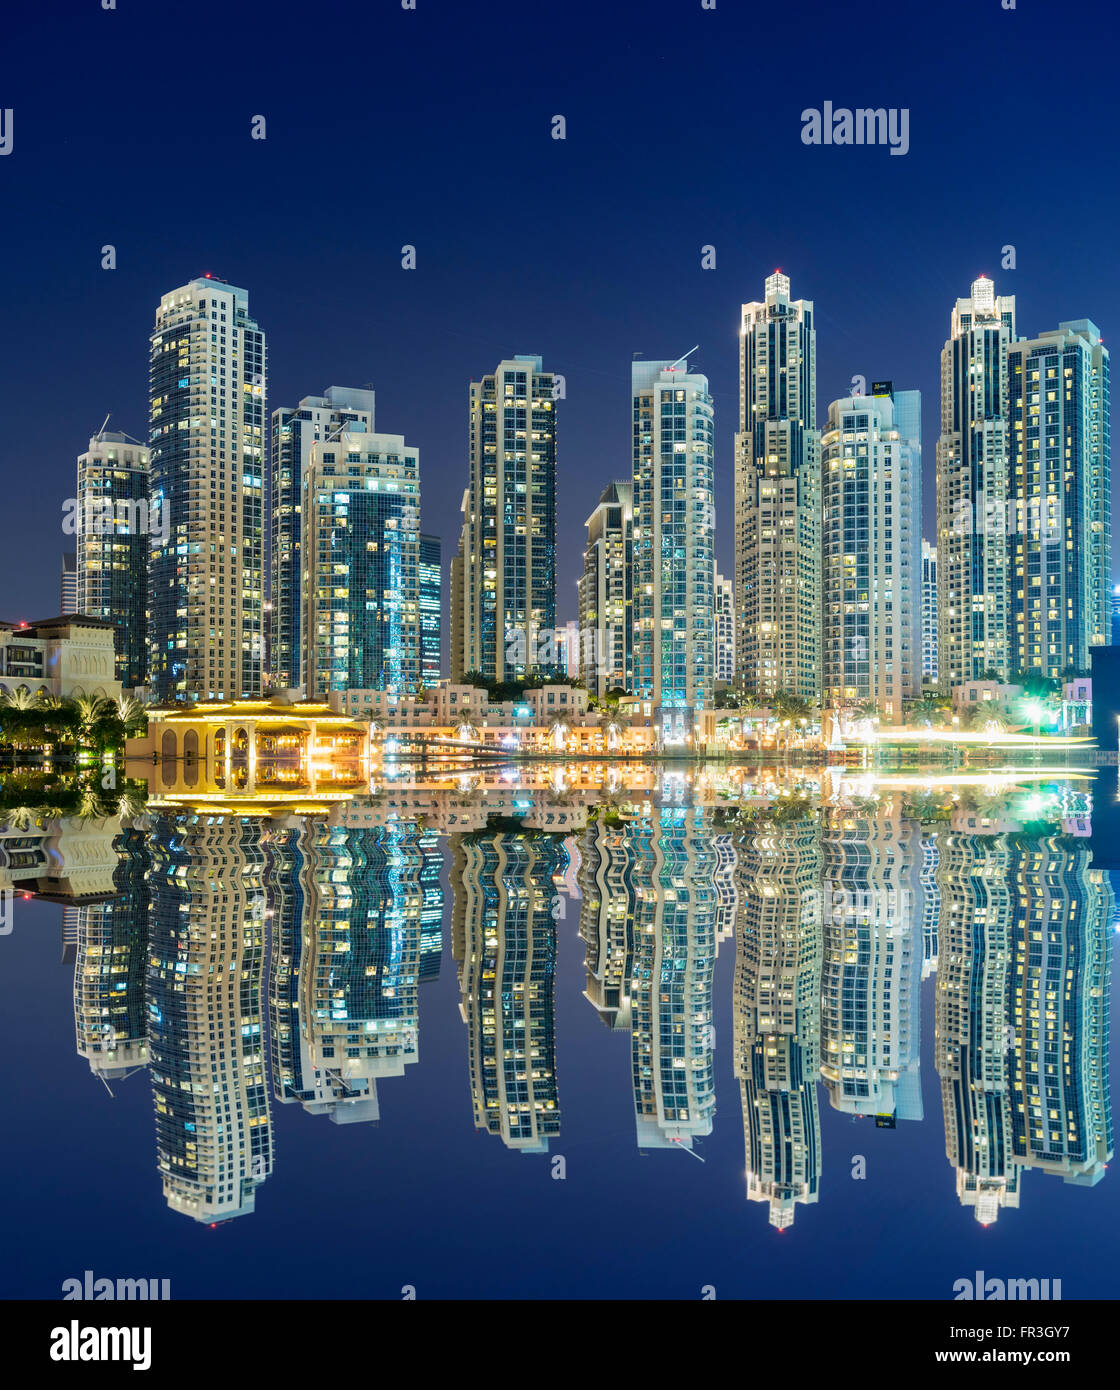 Night View Of Many High-rise Luxury Apartment Towers In